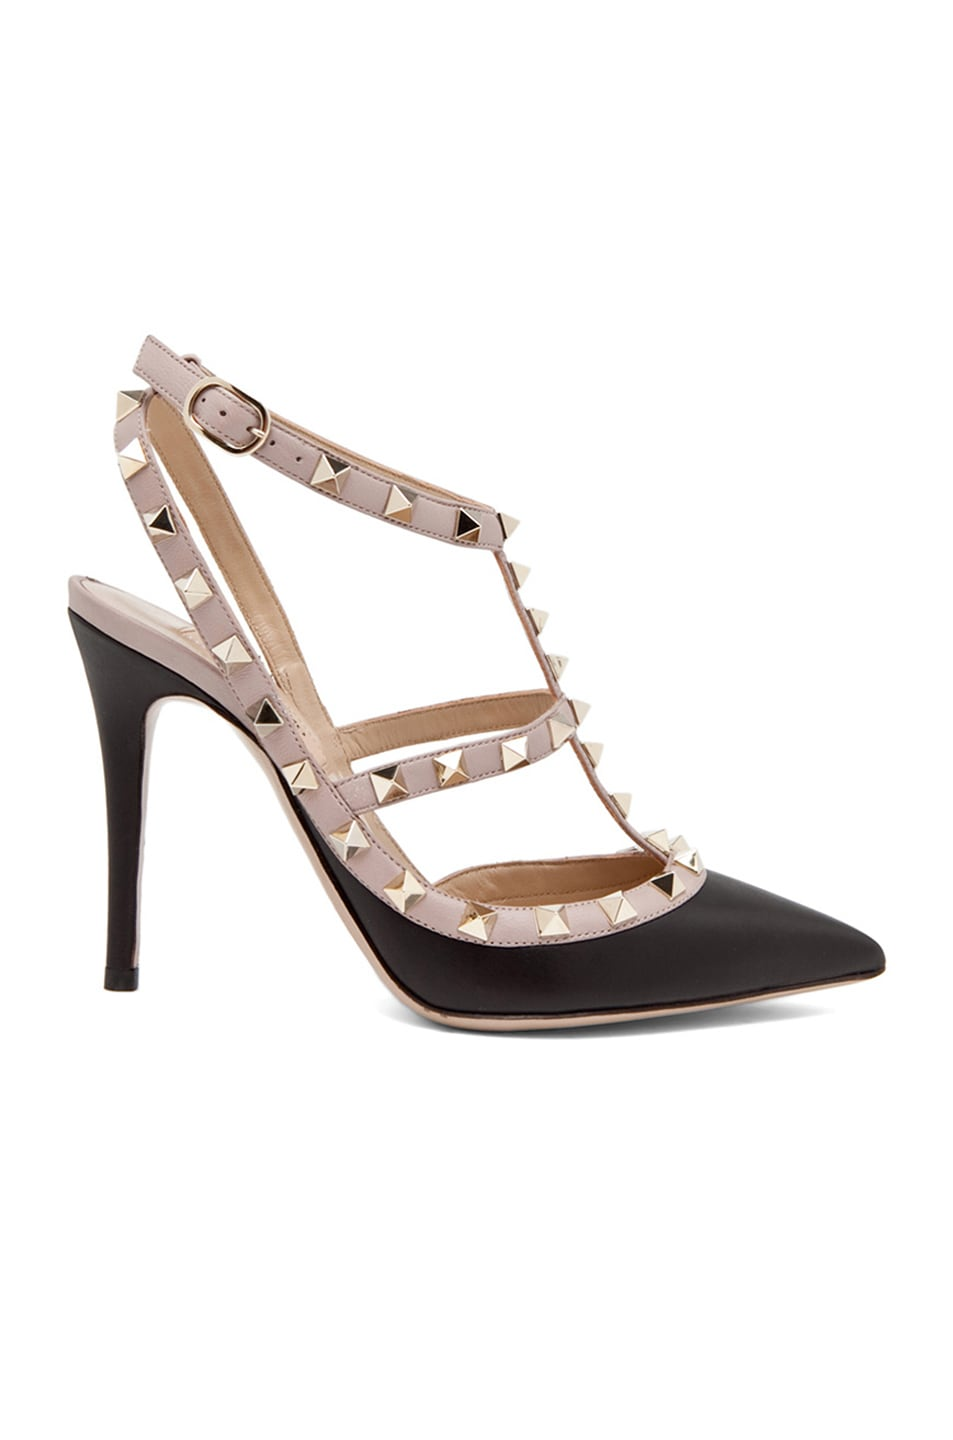 Image 1 of Valentino Rockstud Leather Slingbacks T.100 in Black